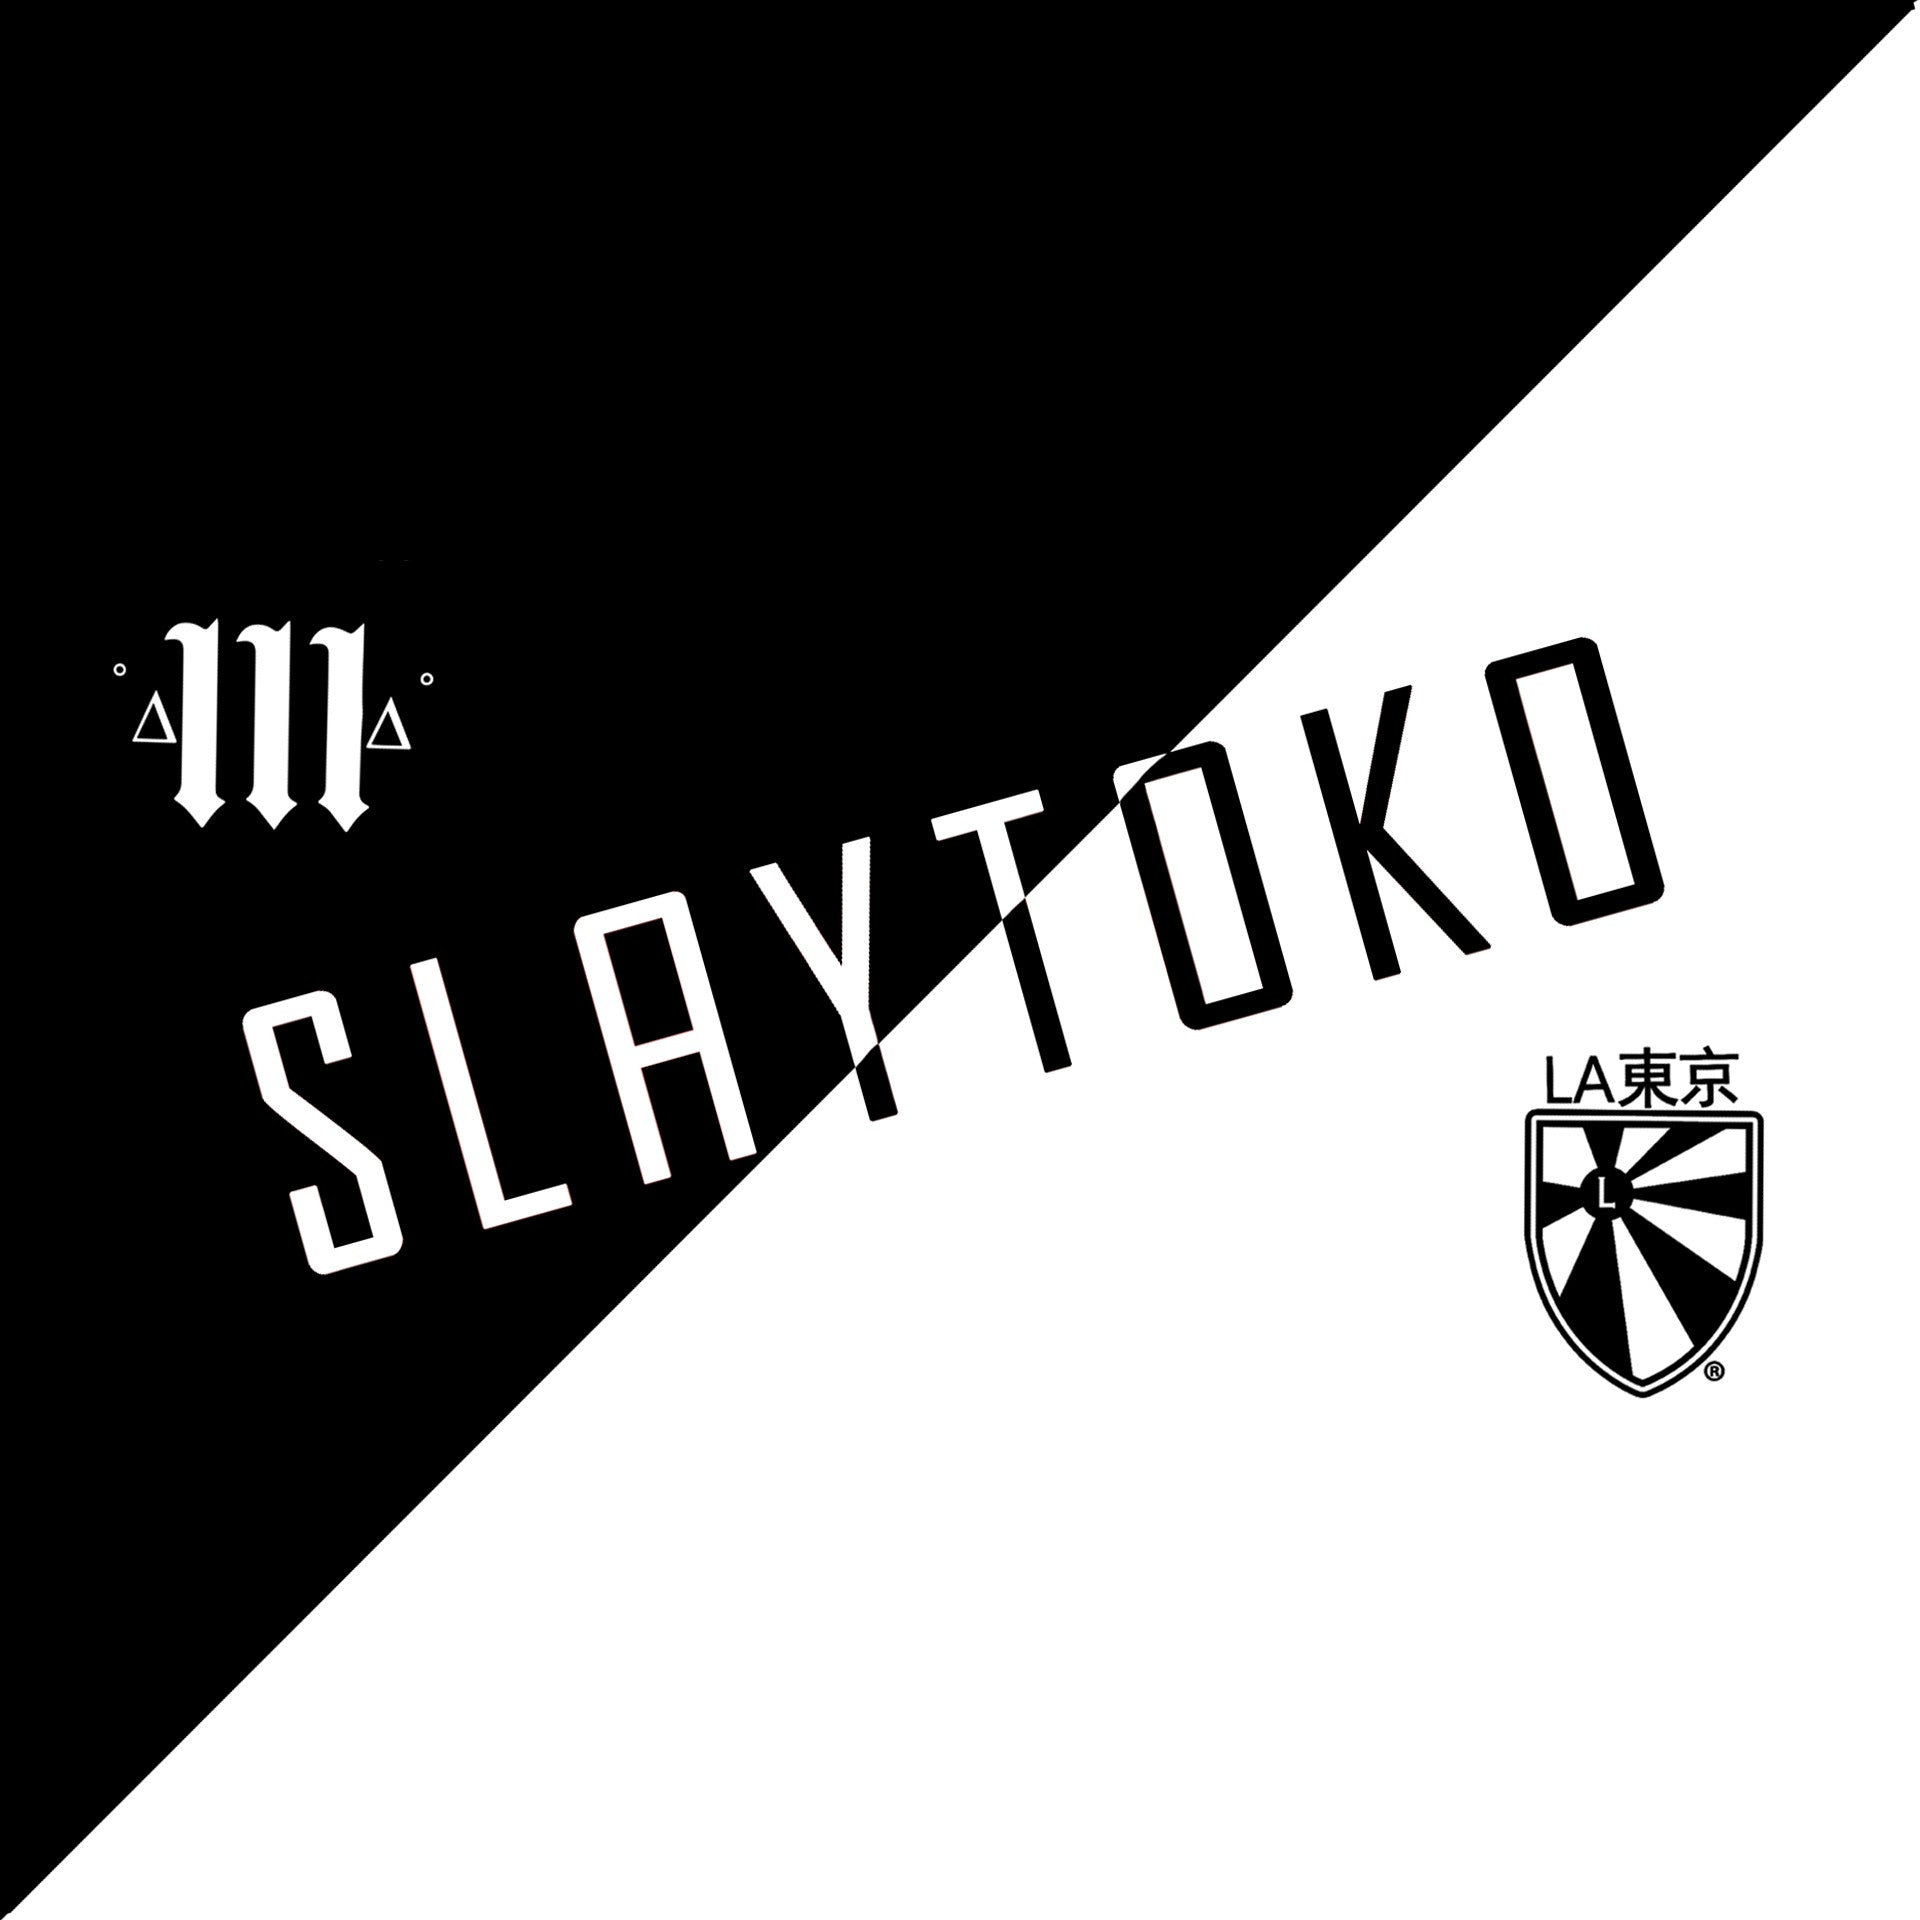 Slaytokyo Recap (Release Party)